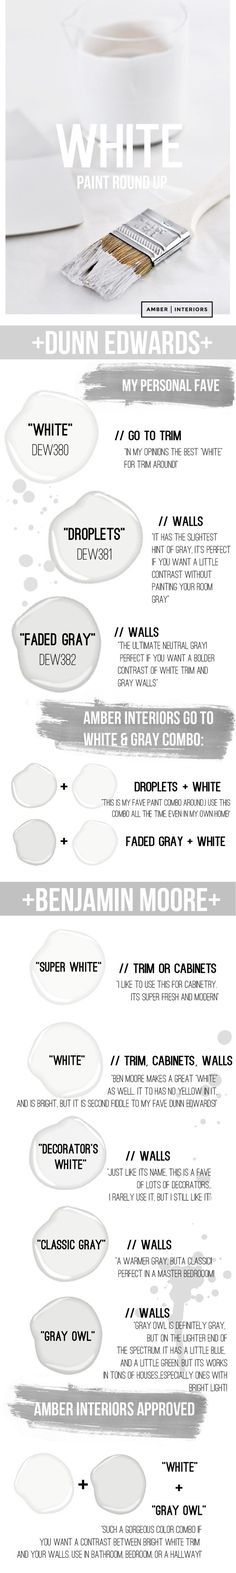 FYI: White Paint - Amber Interiors